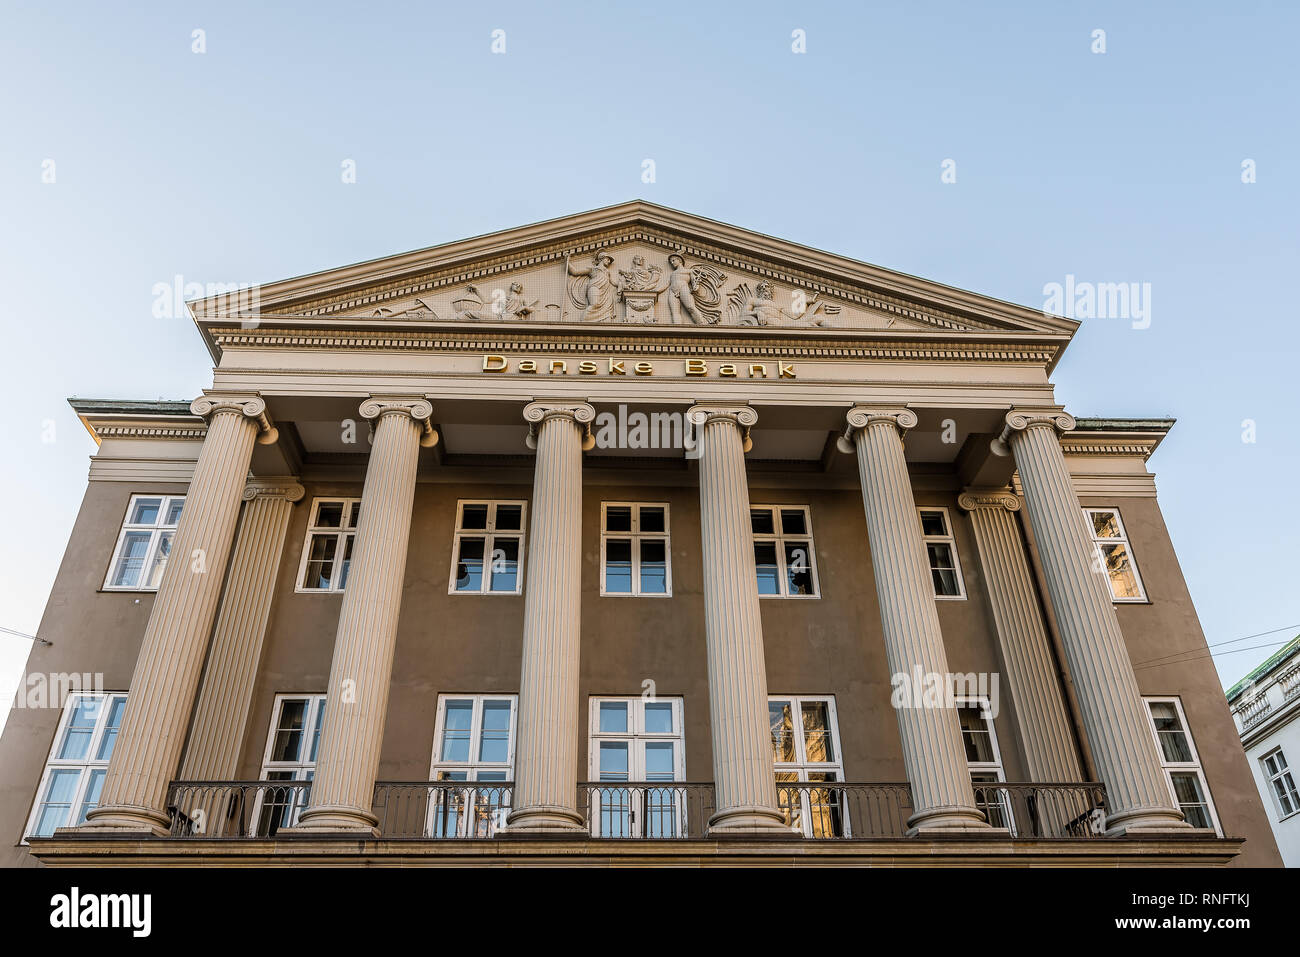 The facade of the money-laundering Danish Bank with ionic columns and a sclprured pediment, Copenhagen, February 16, 2019 - Stock Image